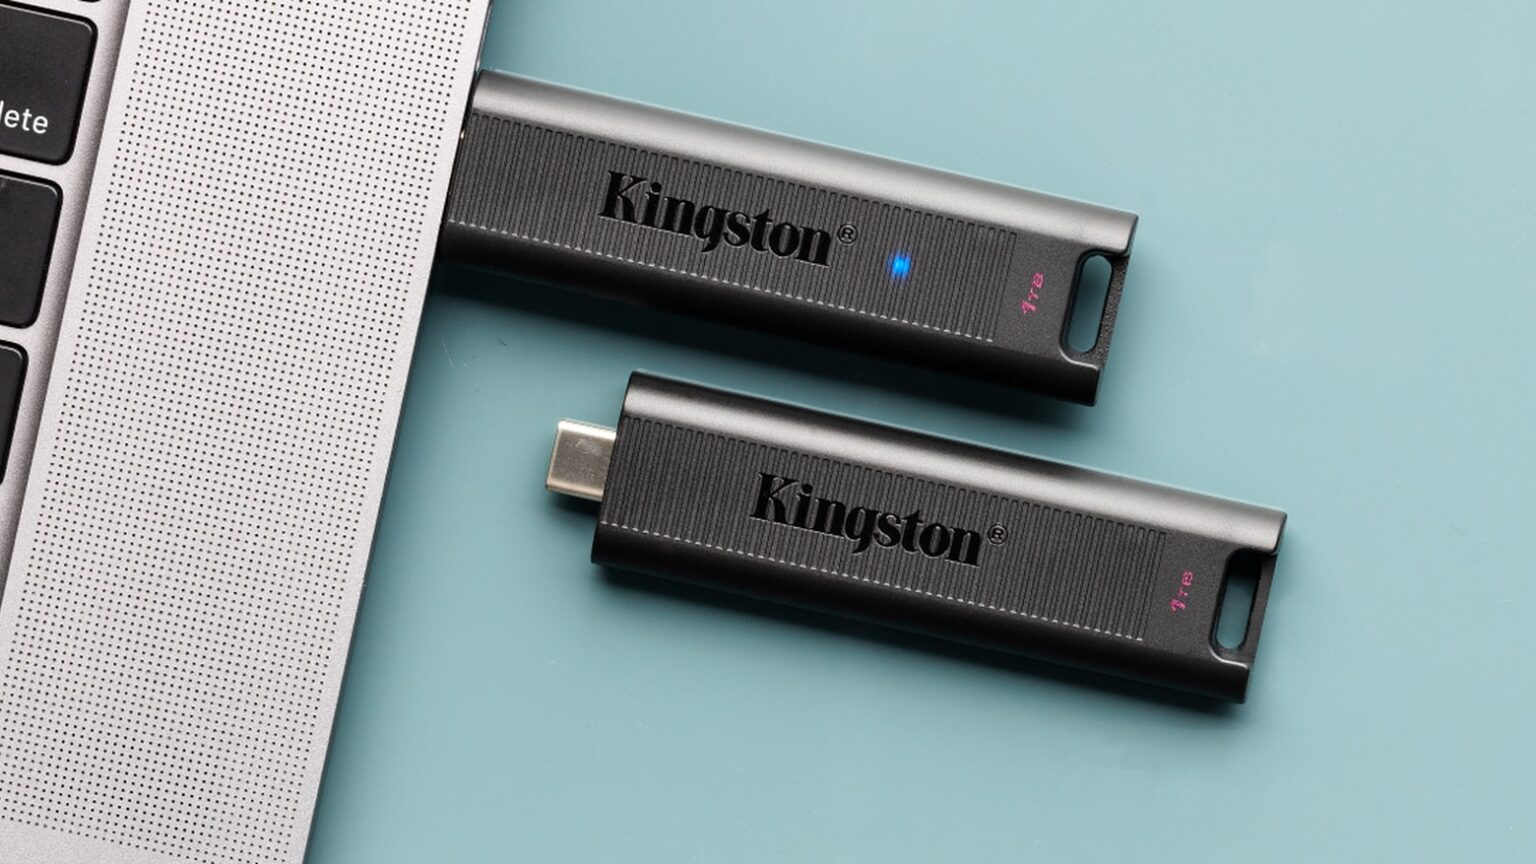 The high-speed Kingston DataTraveler flash drive comes in sizes up to 1TB.